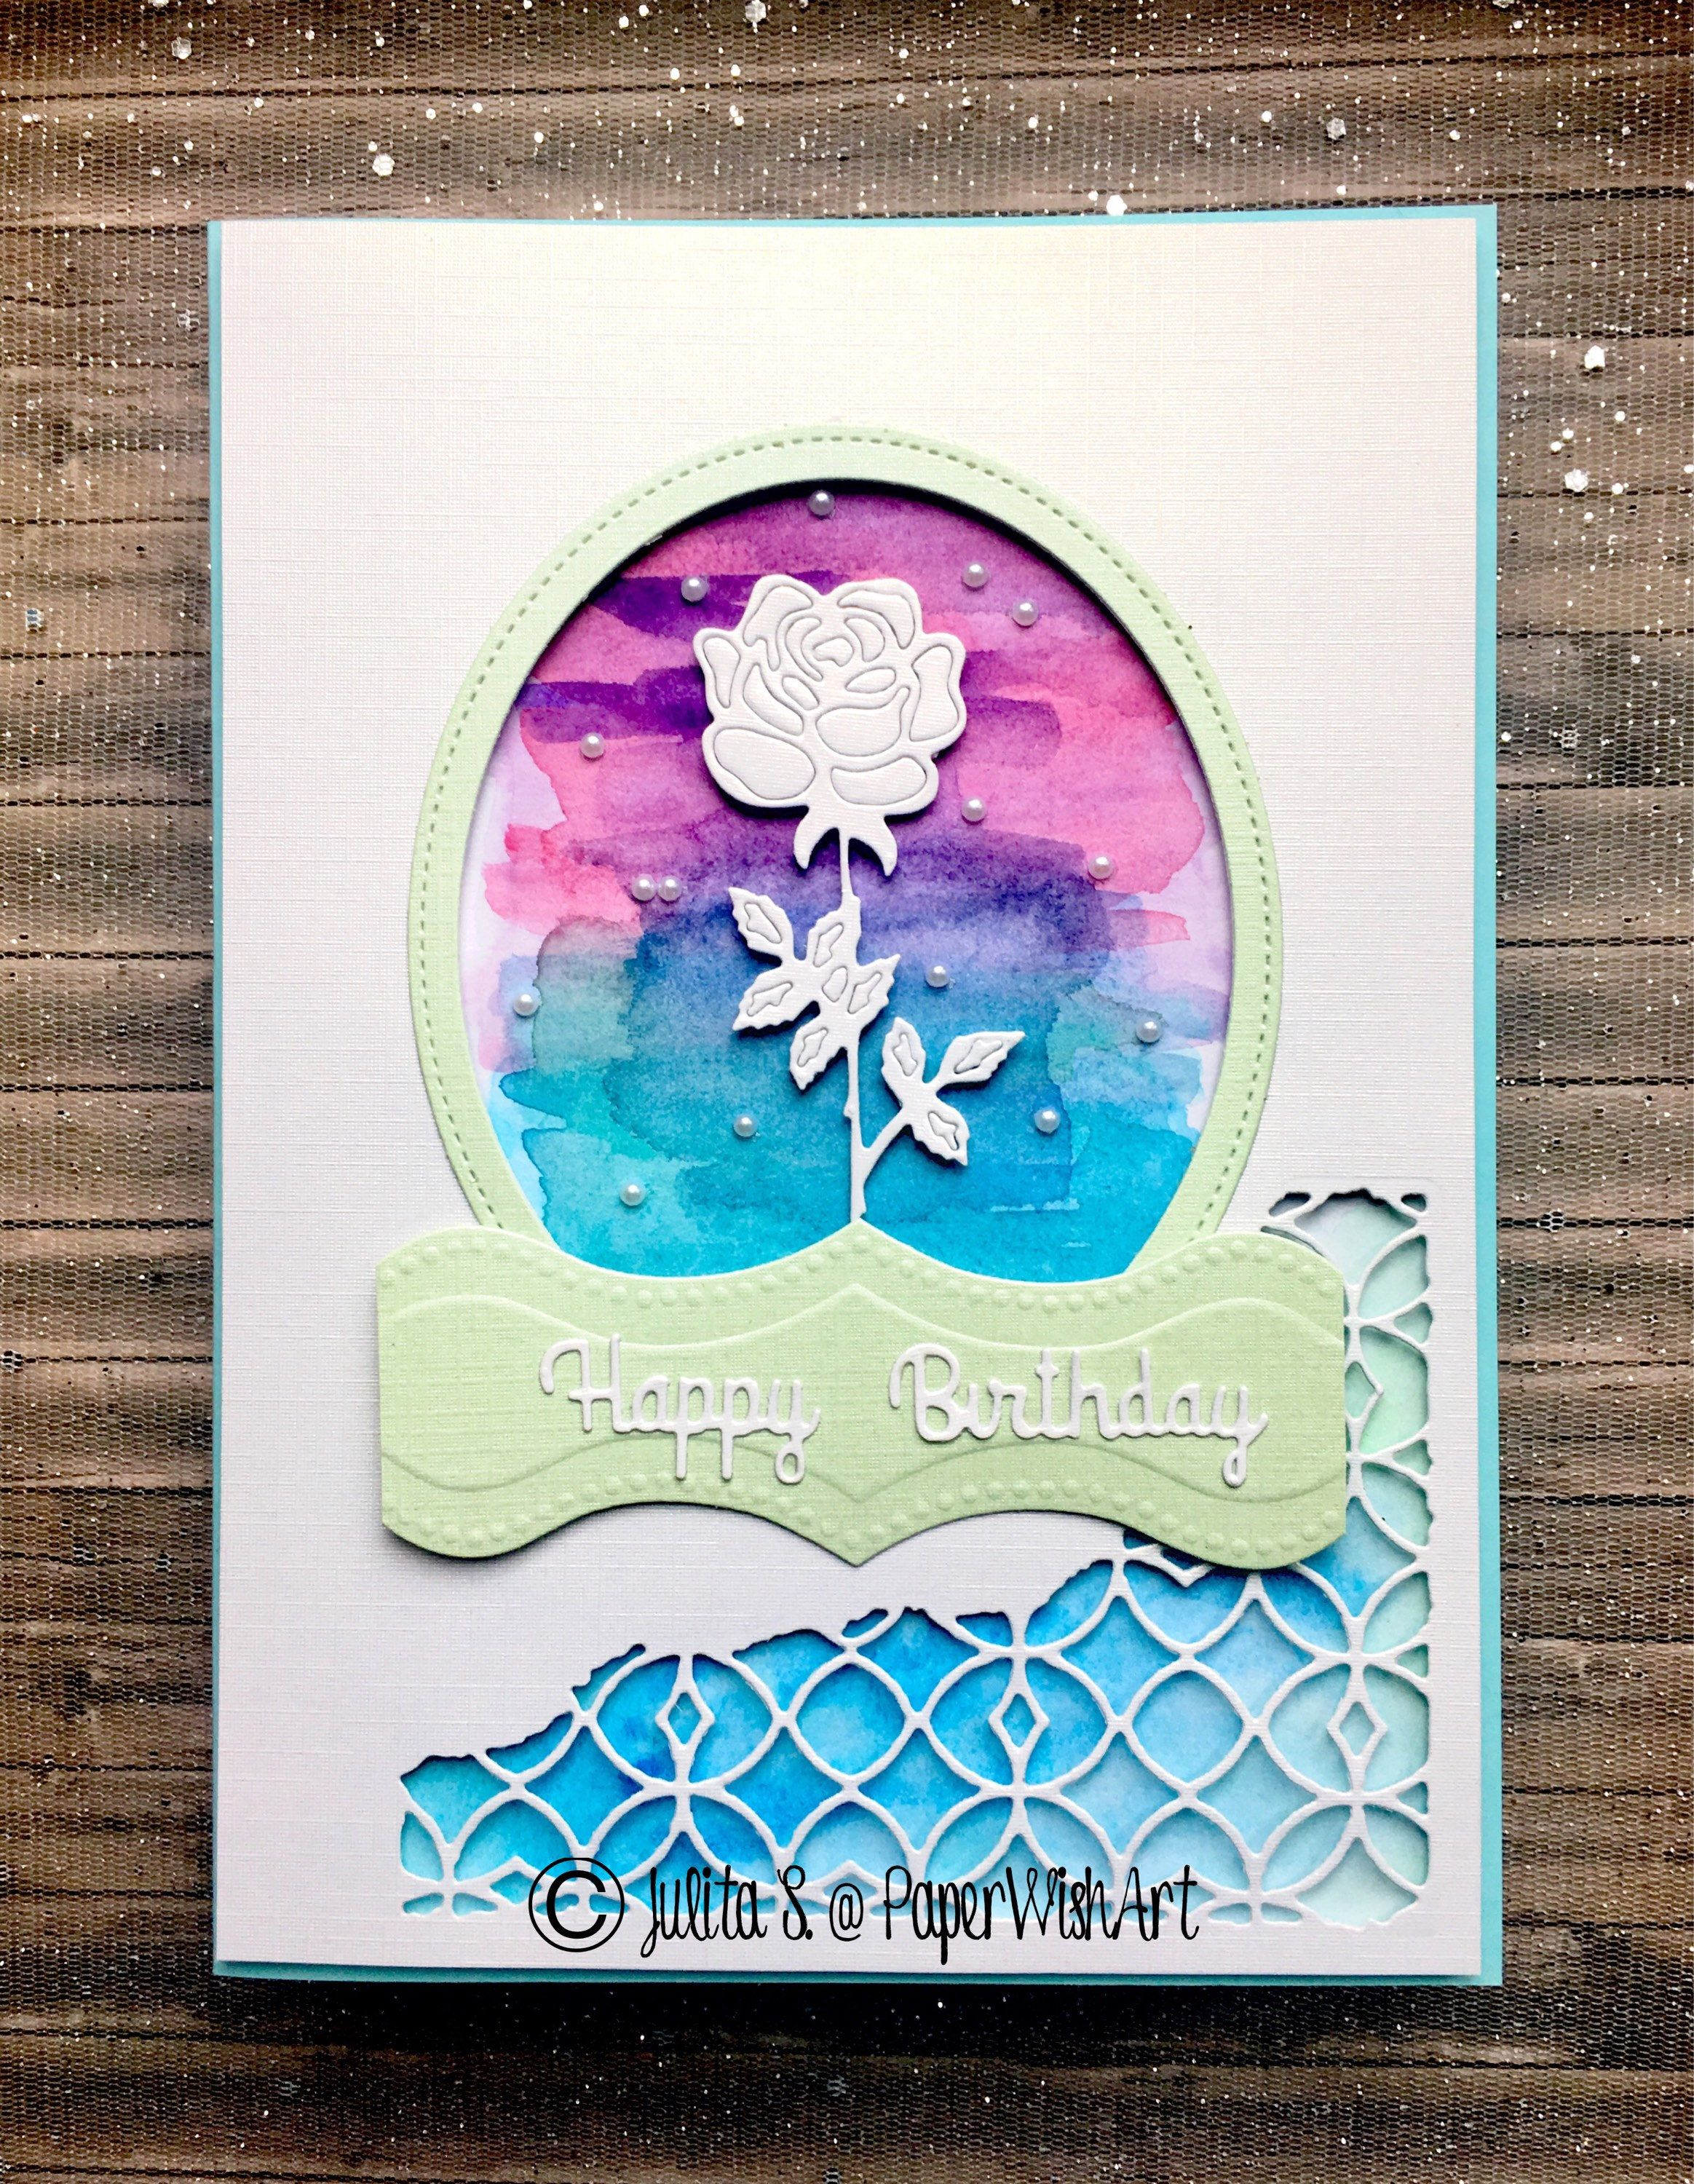 Watercolour and rose aperture handmade birthday card dimensional watercolour and rose aperture handmade birthday card dimensional card for woman 3d card artist greeting card free shipping uk kristyandbryce Images